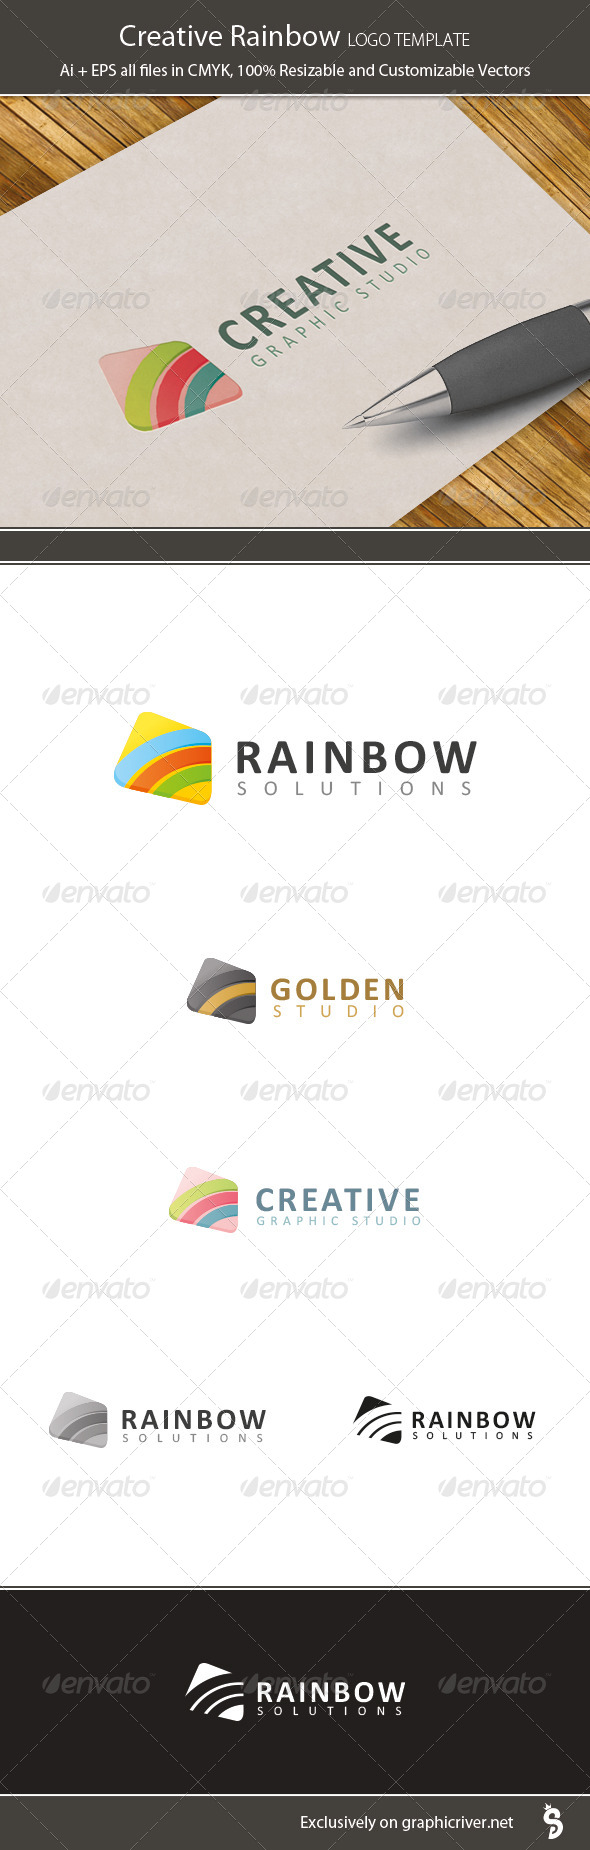 Creative Rainbow Logo Template - Vector Abstract